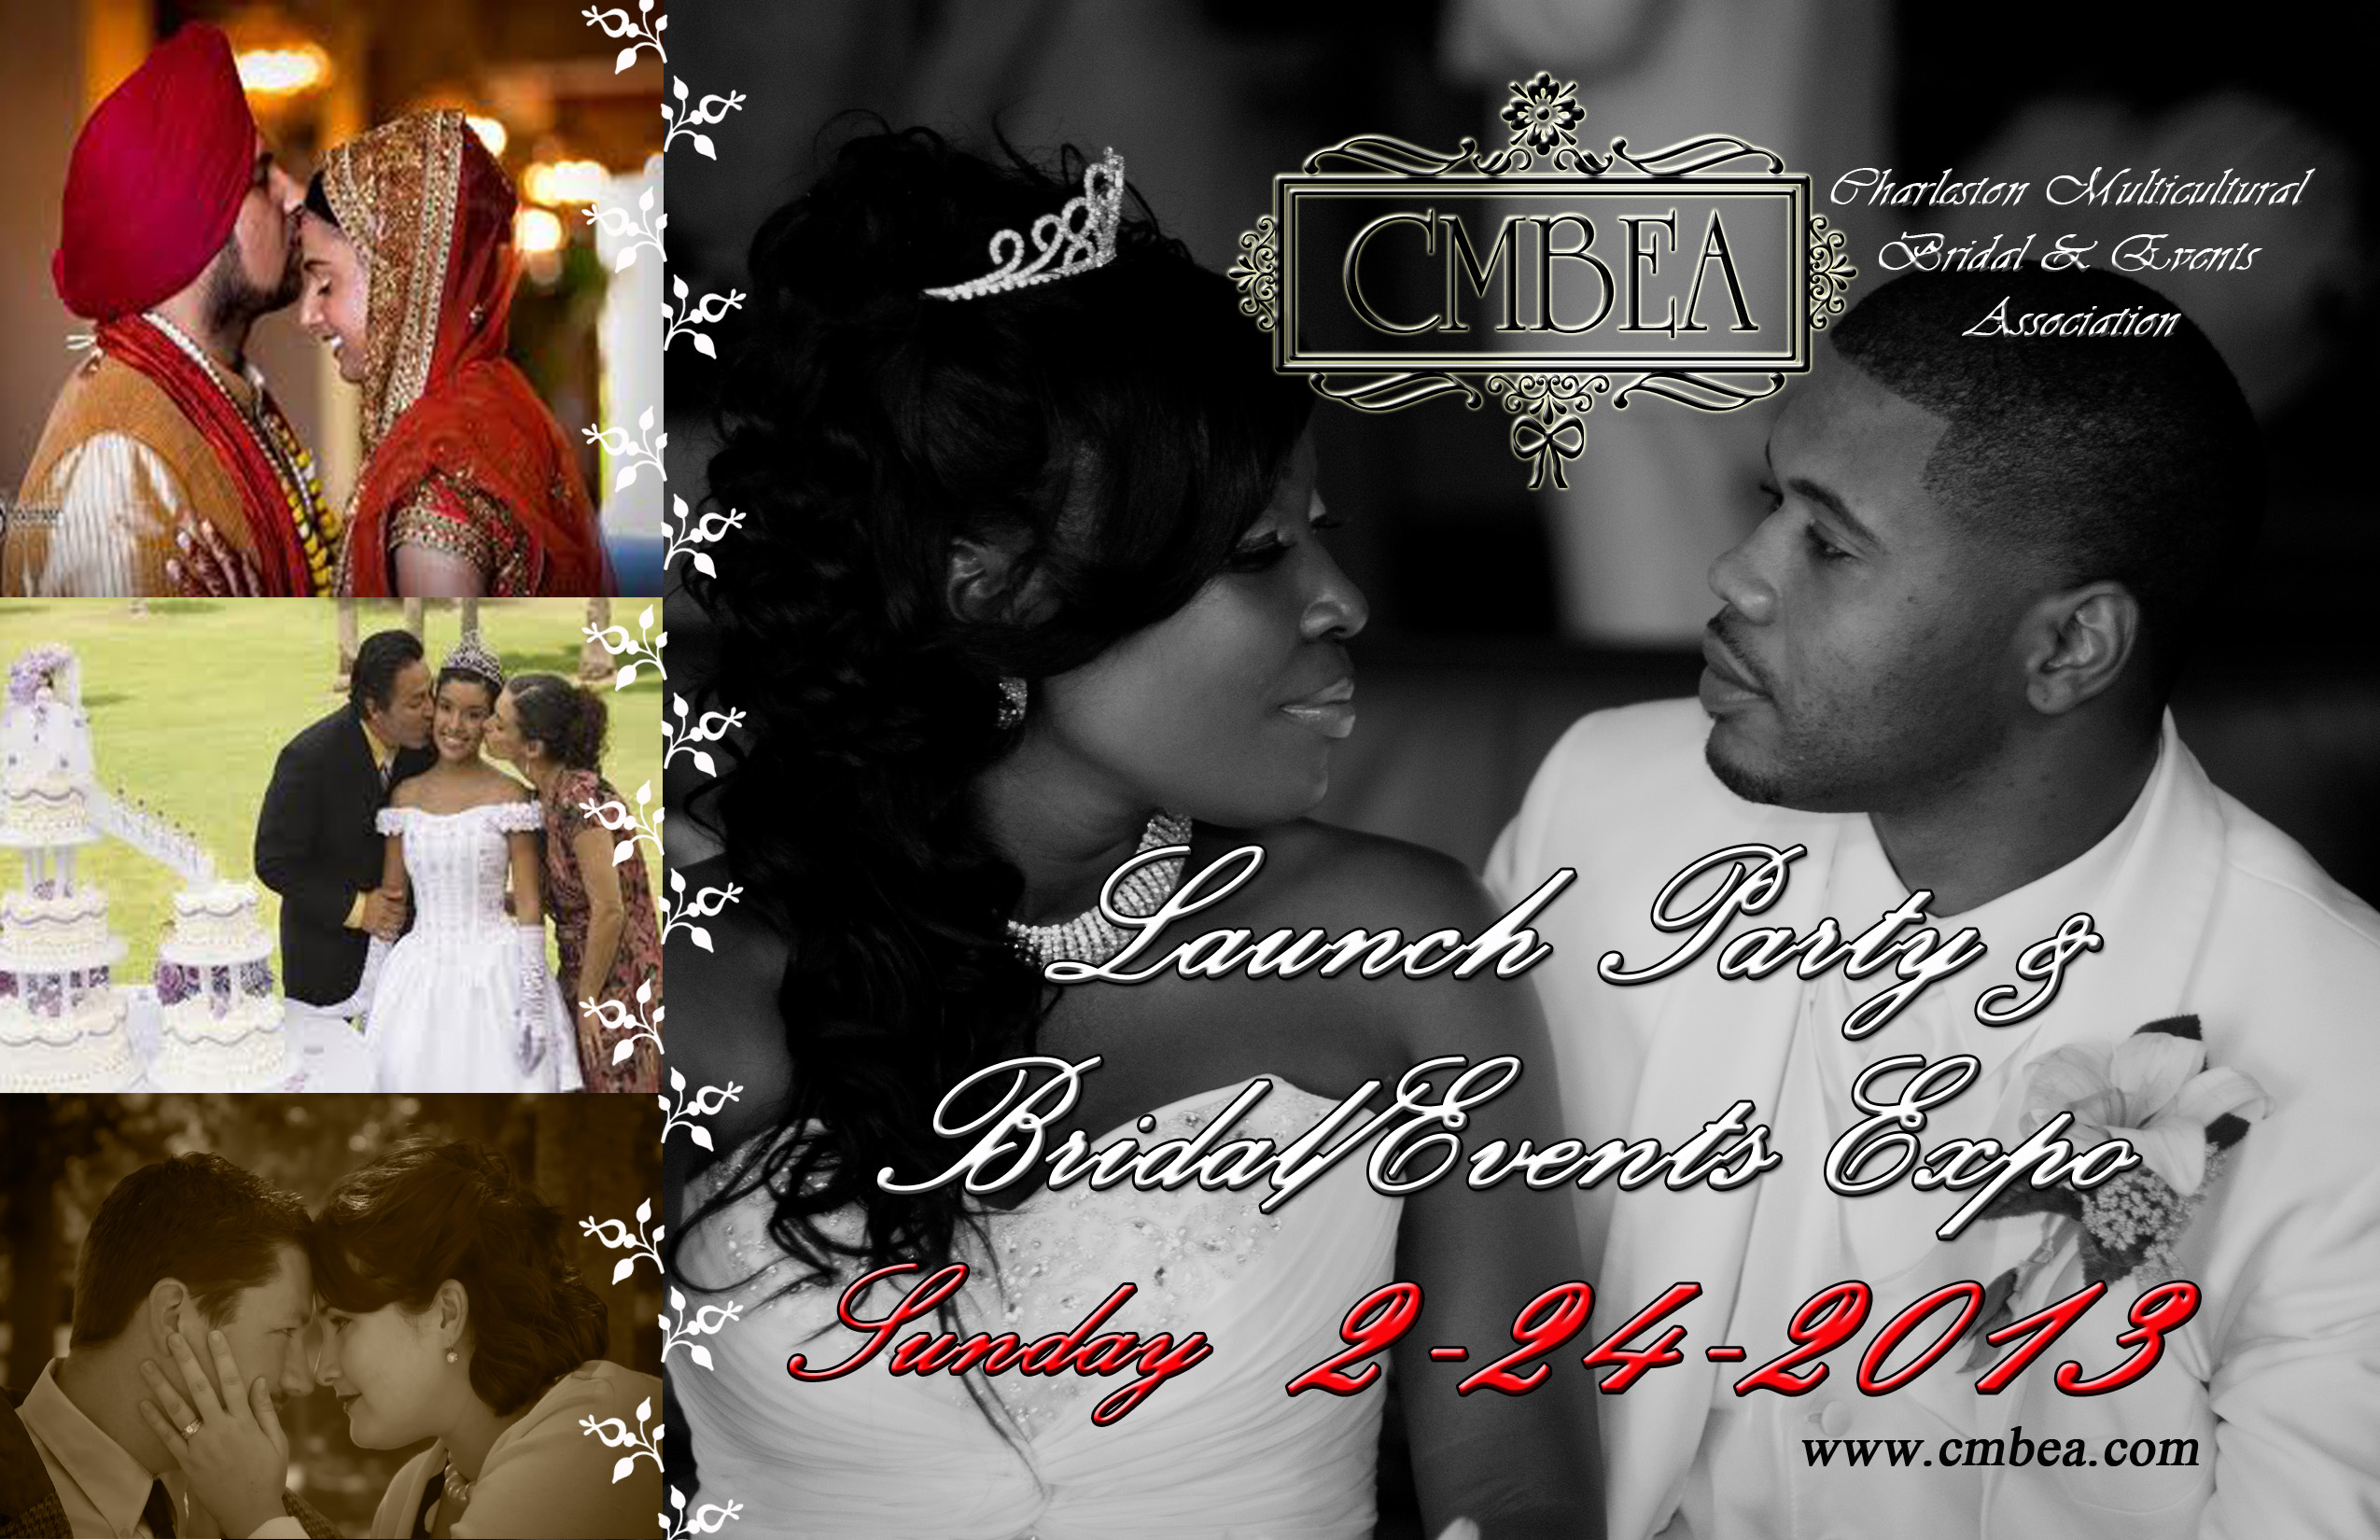 CMBEA Launch Party Ad Flyer